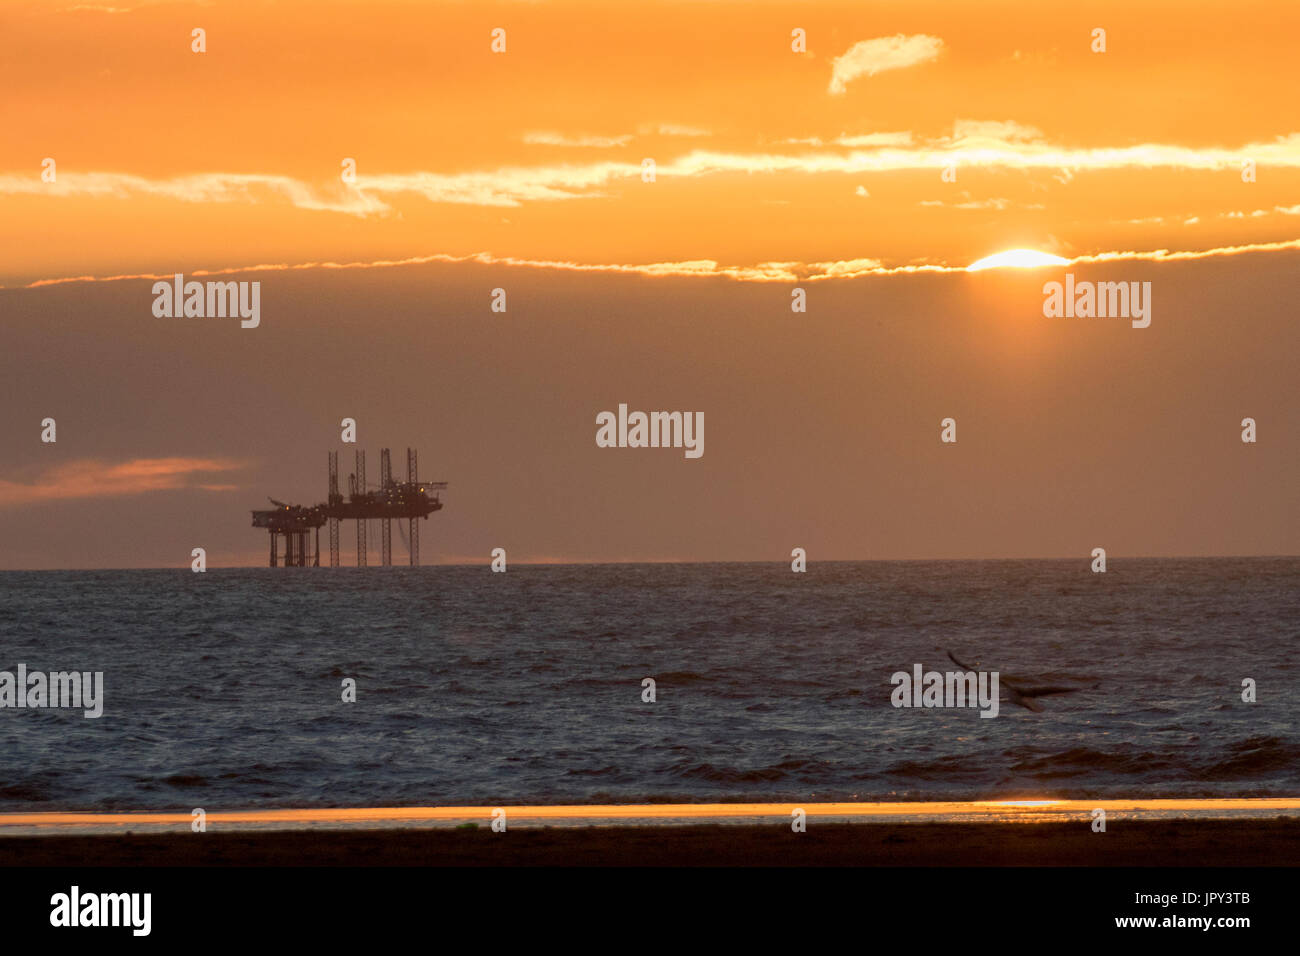 Ainsdale, Southport, Merseyside, UK. 2nd August, 2017. UK Weather.  Colourful sunset over Morecambe Bay Gas Rig. In 1974 the second largest gas field in the UK was discovered 25 miles (40 km) west of Blackpool, with original reserves of over 7 trillion cubic feet (tcf) (200 billion cubic metres). At its peak 15% of Britain's gas supply came from the bay but production is now in decline and the main field was mothballed in 2011. Credit:  MediaWorldImages/AlamyLiveNews - Stock Image